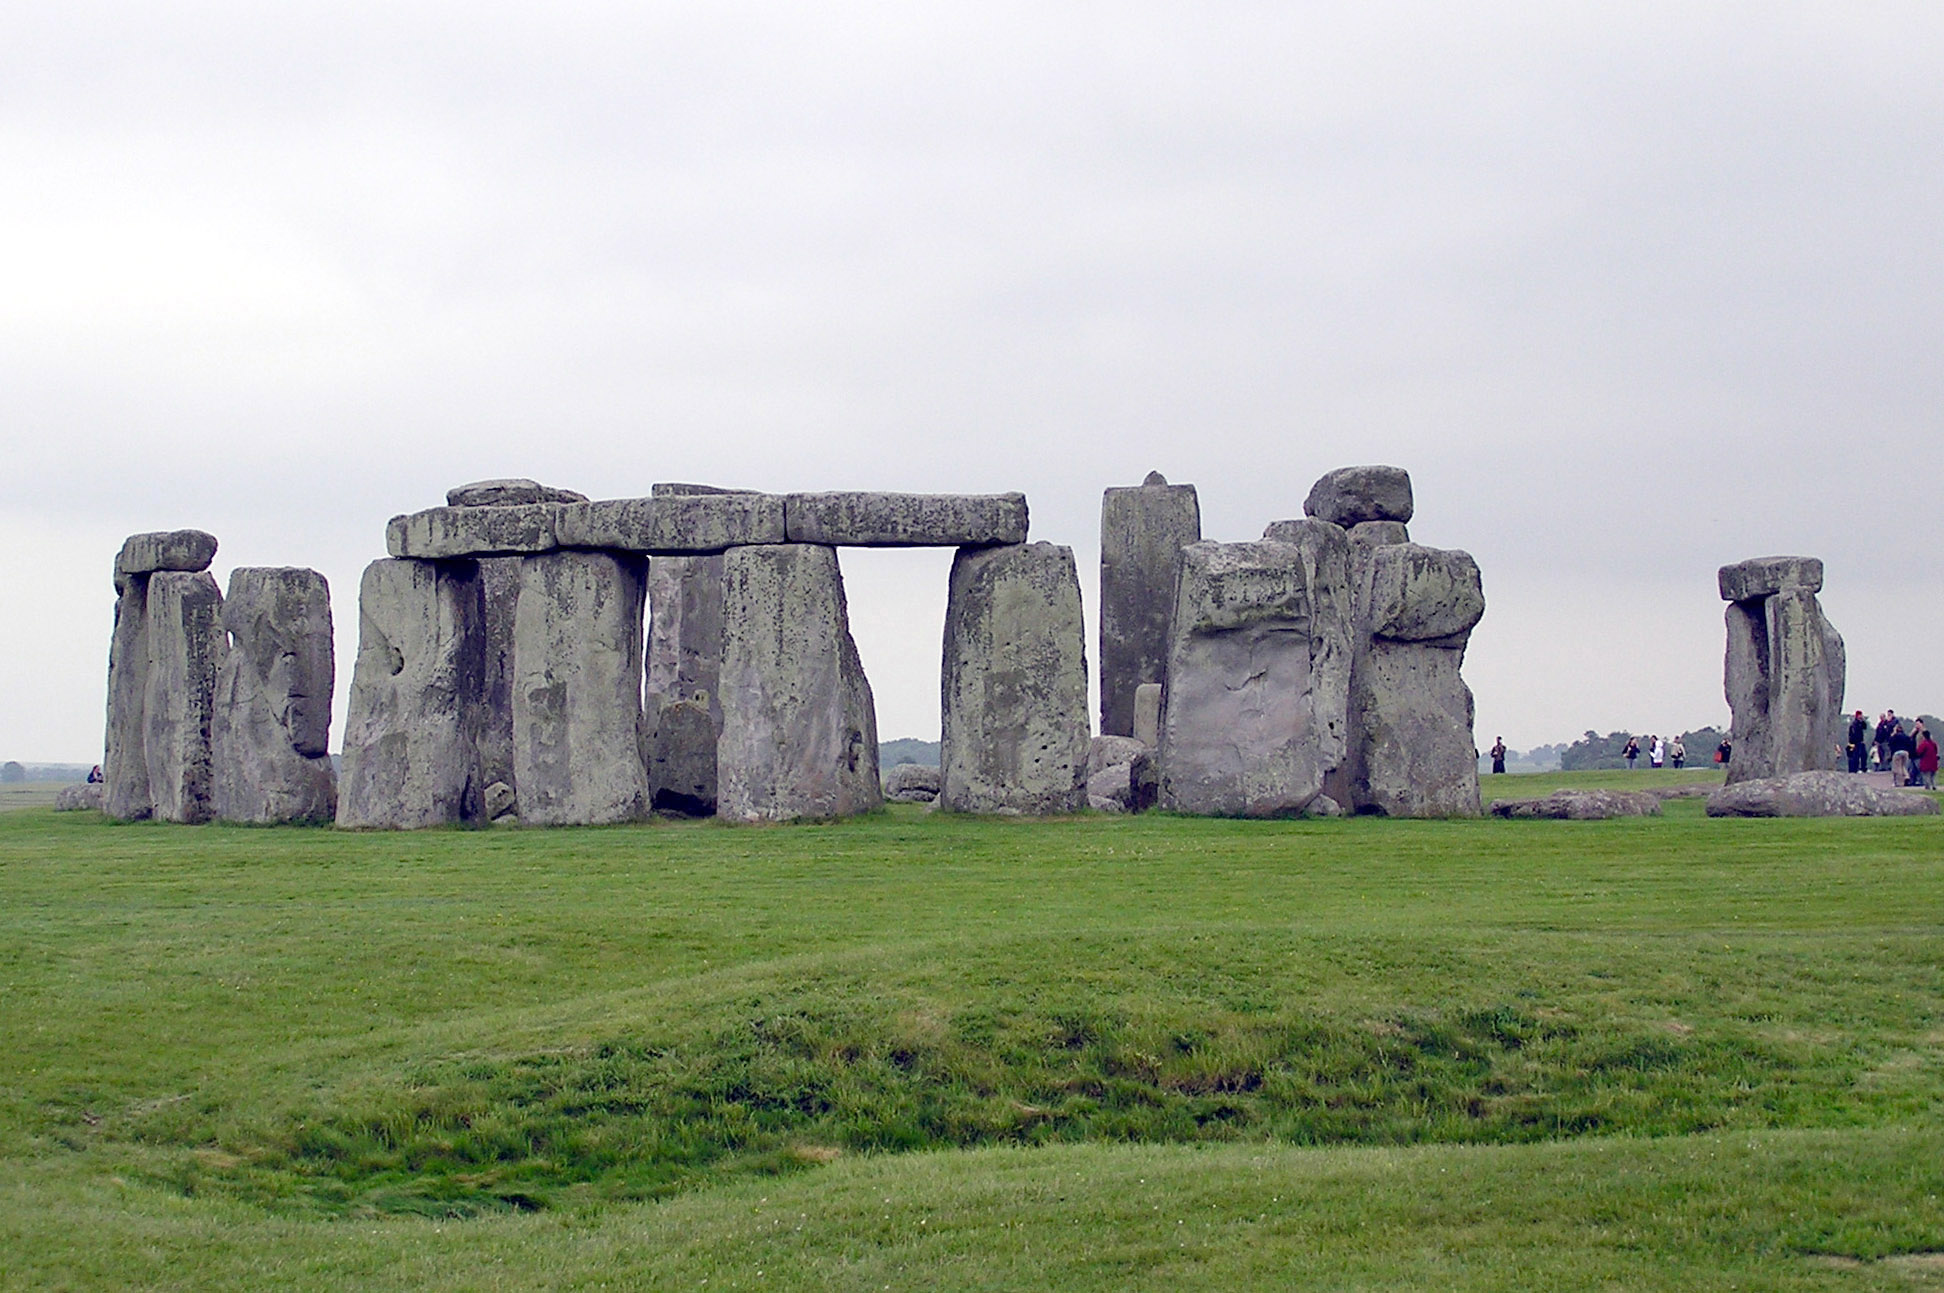 the historical past in stonehenge